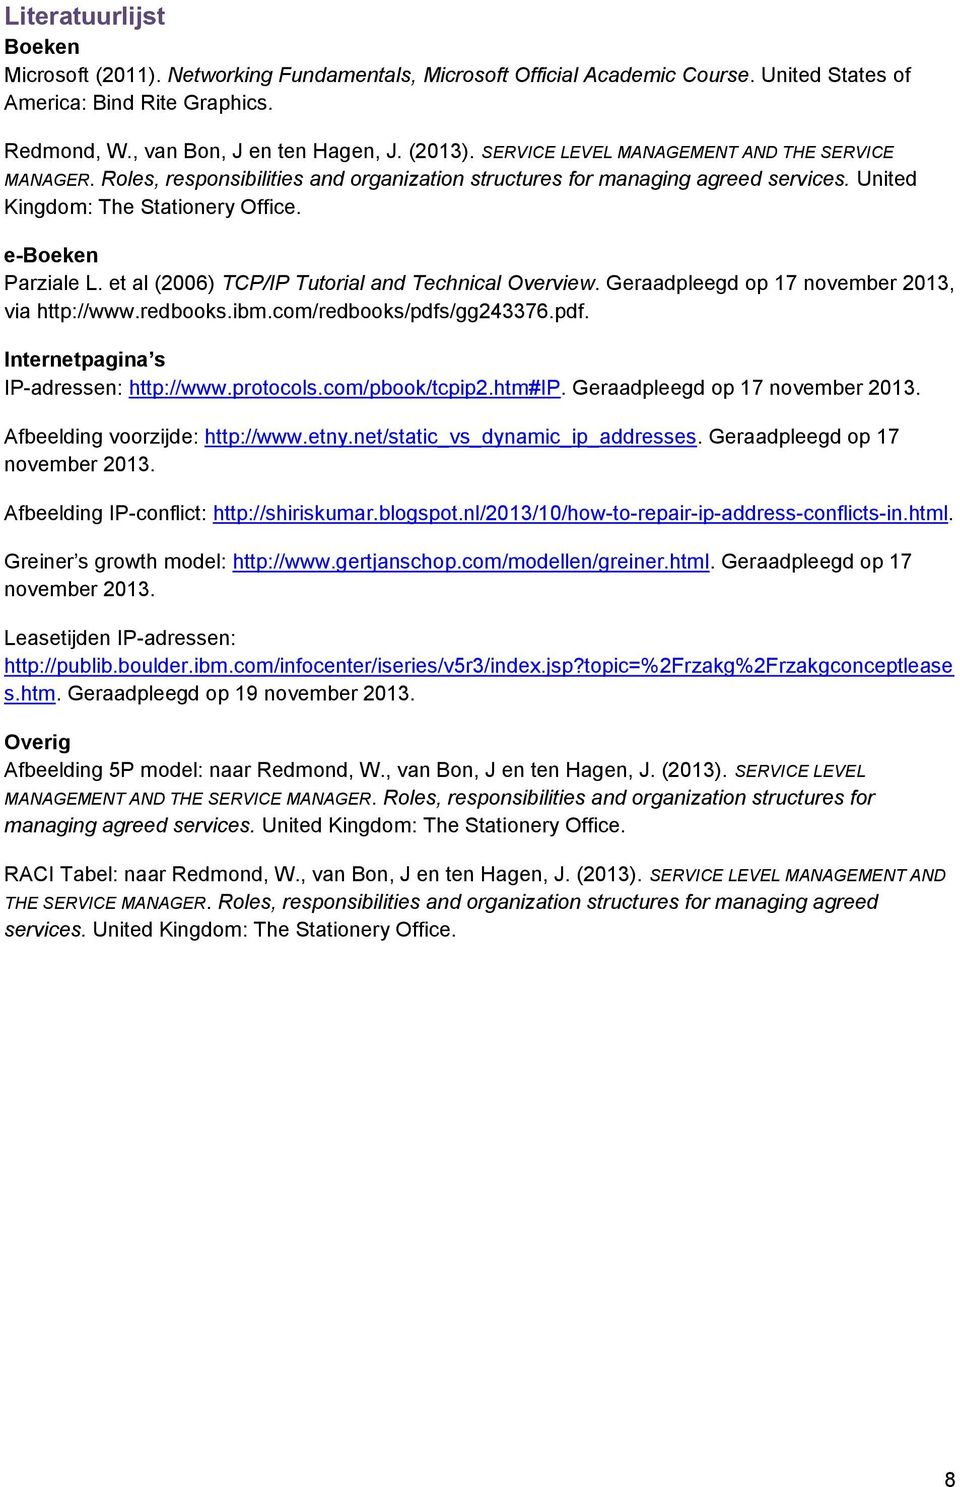 et al (2006) TCP/IP Tutorial and Technical Overview. Geraadpleegd op 17 november 2013, via http://www.redbooks.ibm.com/redbooks/pdfs/gg243376.pdf. Internetpagina s IP-adressen: http://www.protocols.